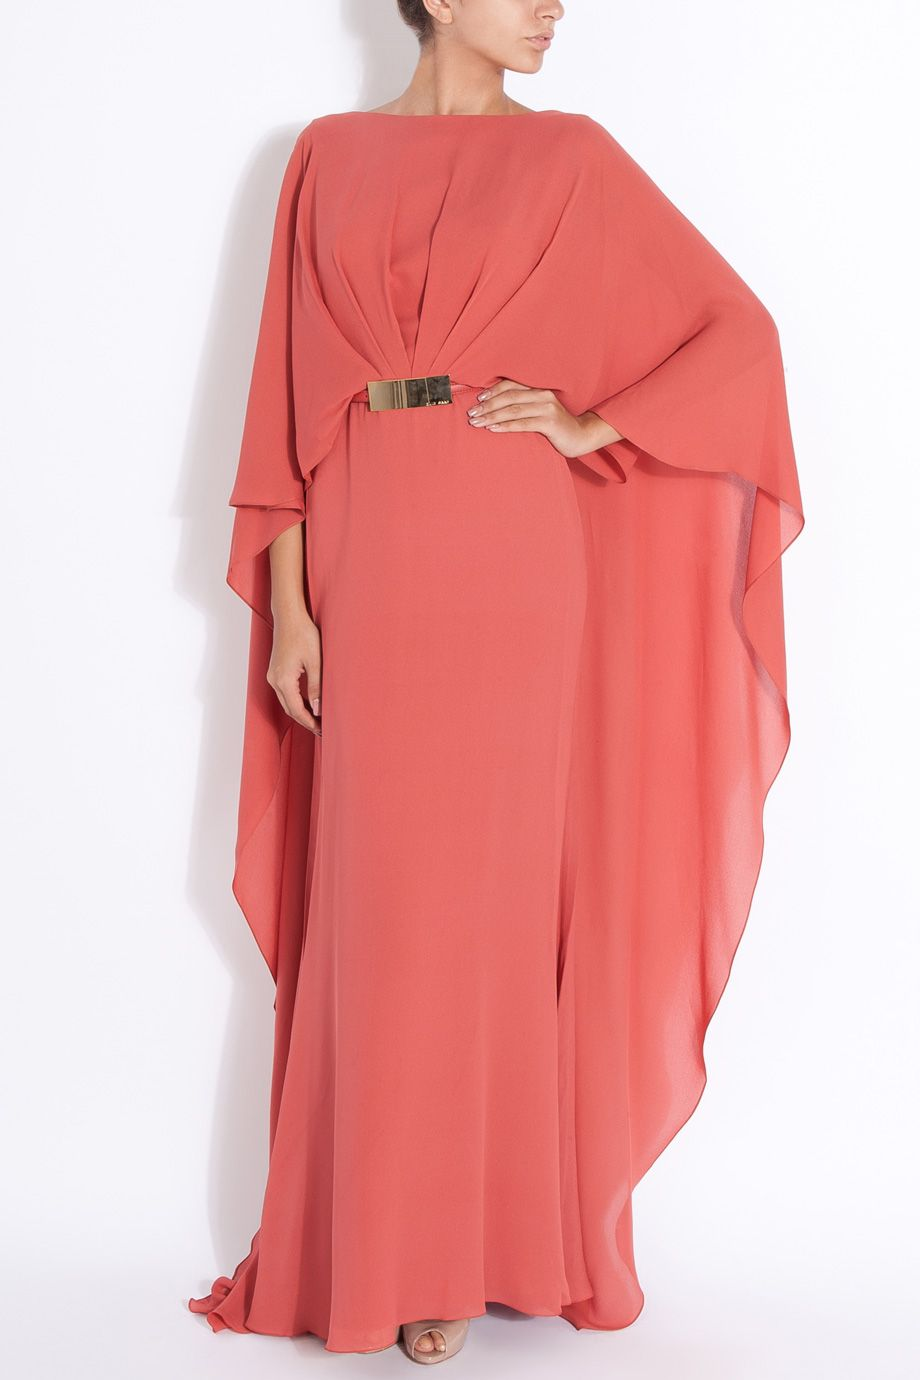 Elie saabus cape style georgette gown showcases spectacular draped